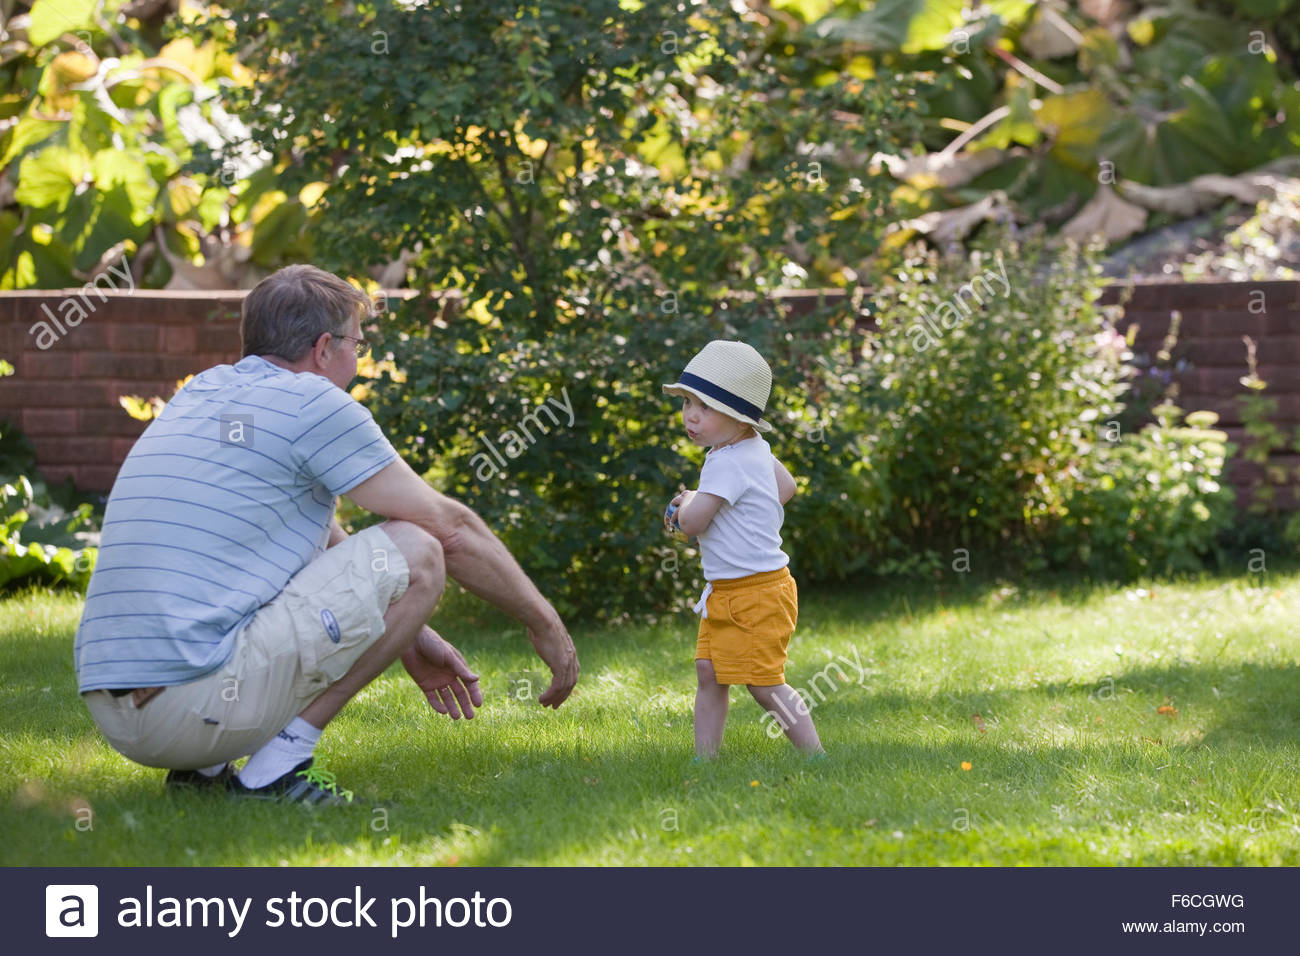 Toddler playing with his grandpa - Stock Image